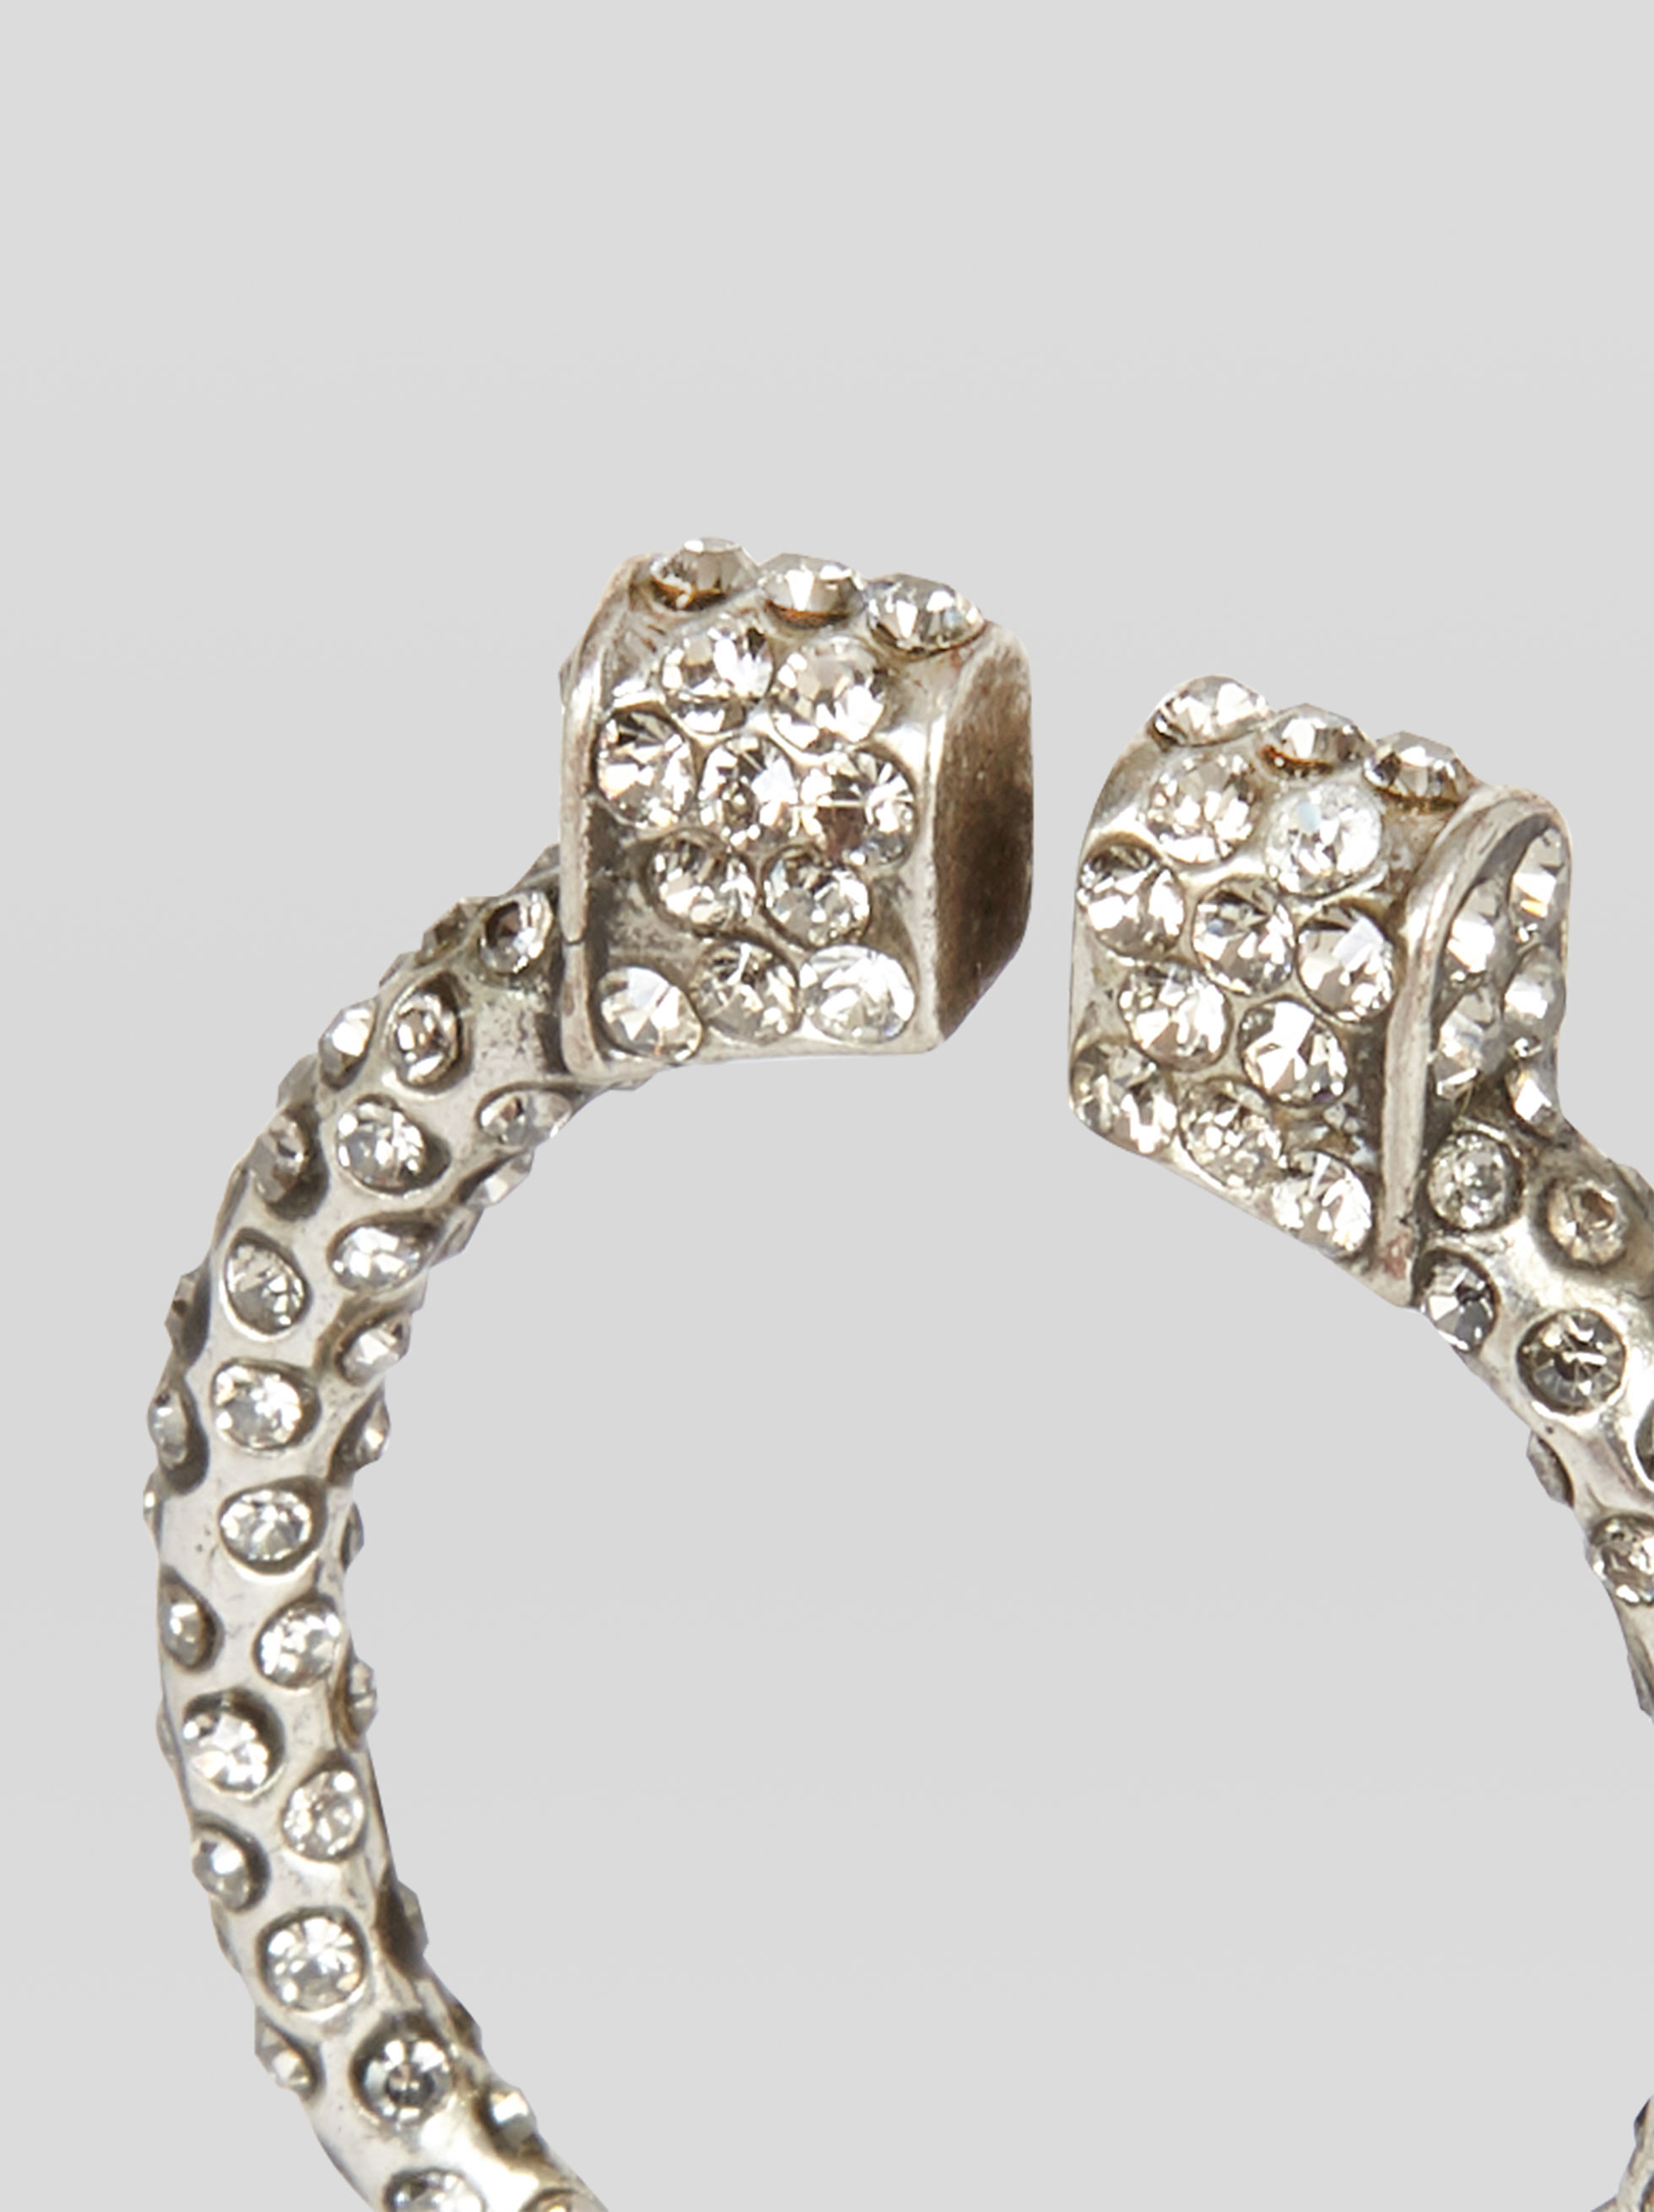 RING WITH RHINESTONES